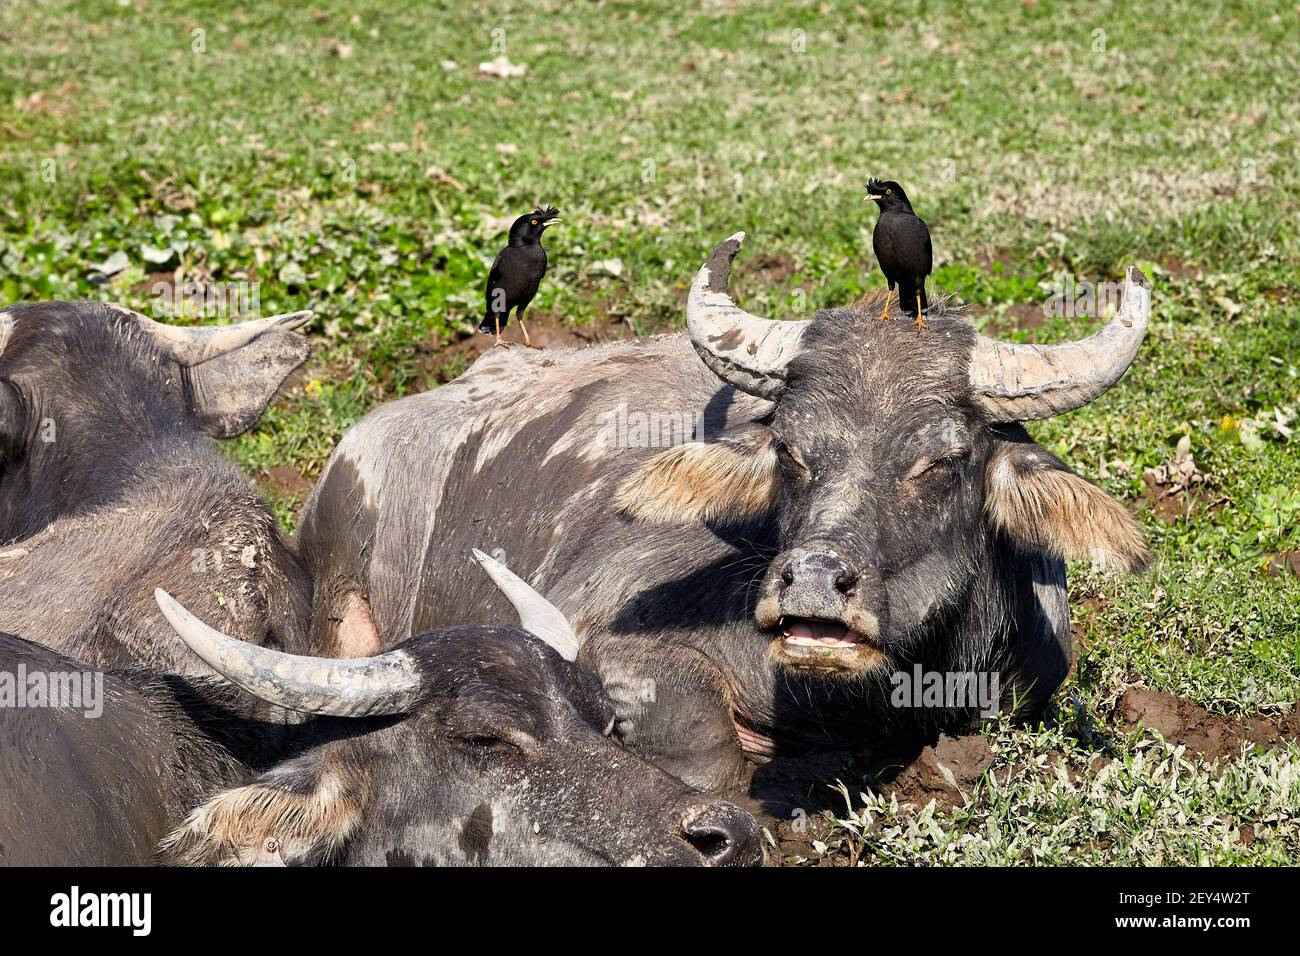 Feral, water buffalo (bubalus bubalis) wallowing in mud pools with crested myna birds (Acridotheres cristatellus). The birds clean ticks and other ins Stock Photo